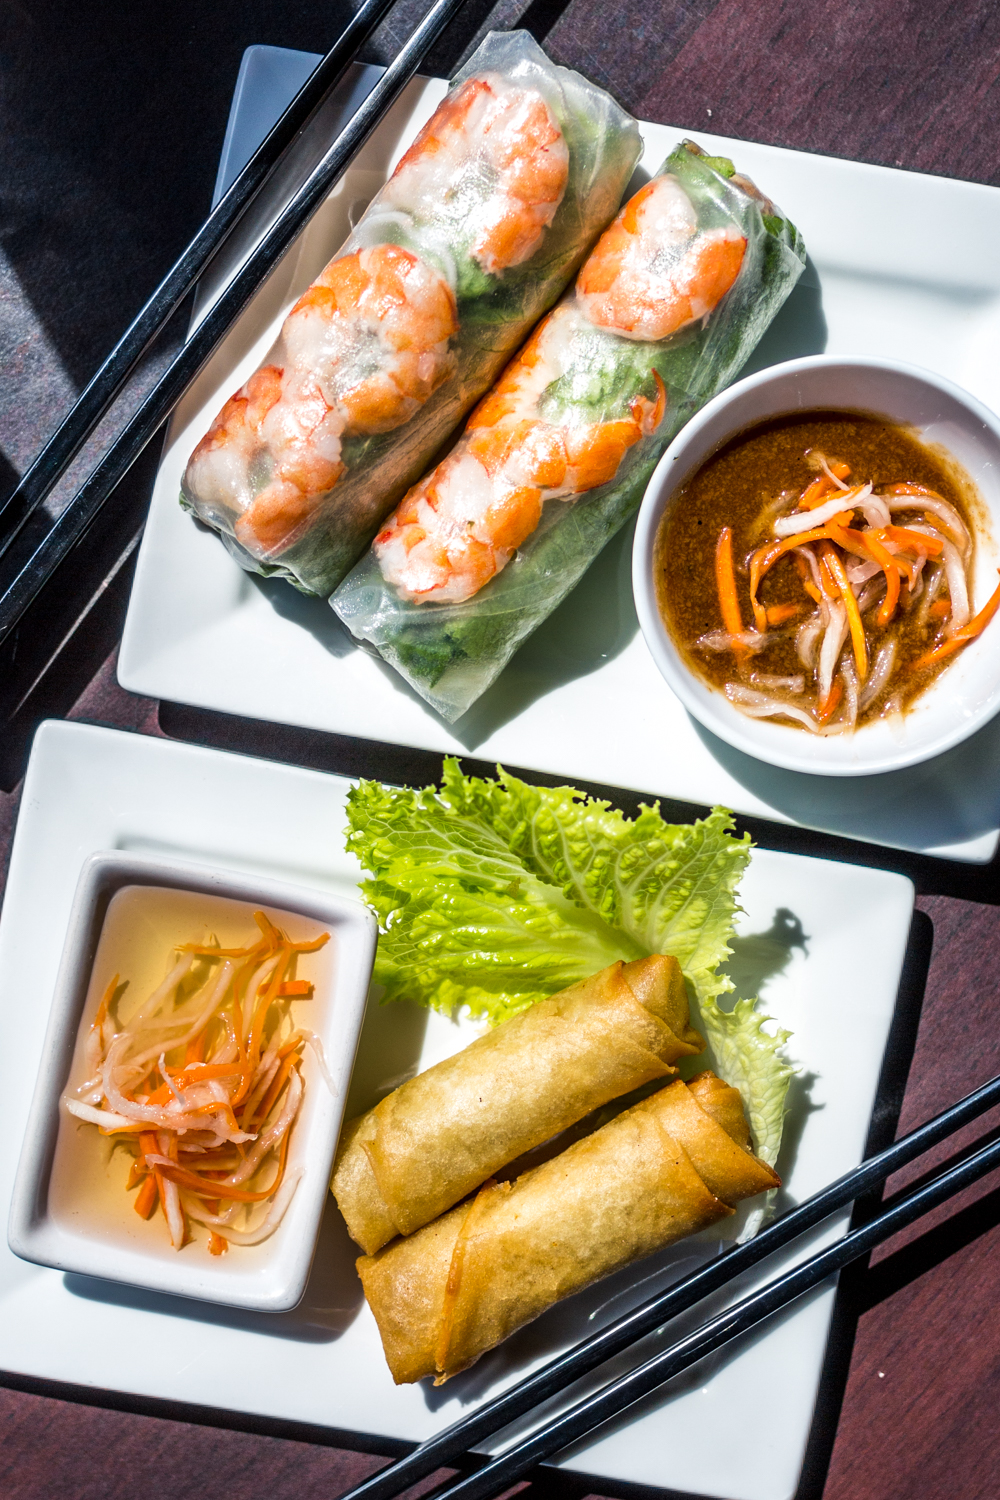 Spring rolls and egg rolls / Image: Catherine Viox // Published: 9.28.19{ }